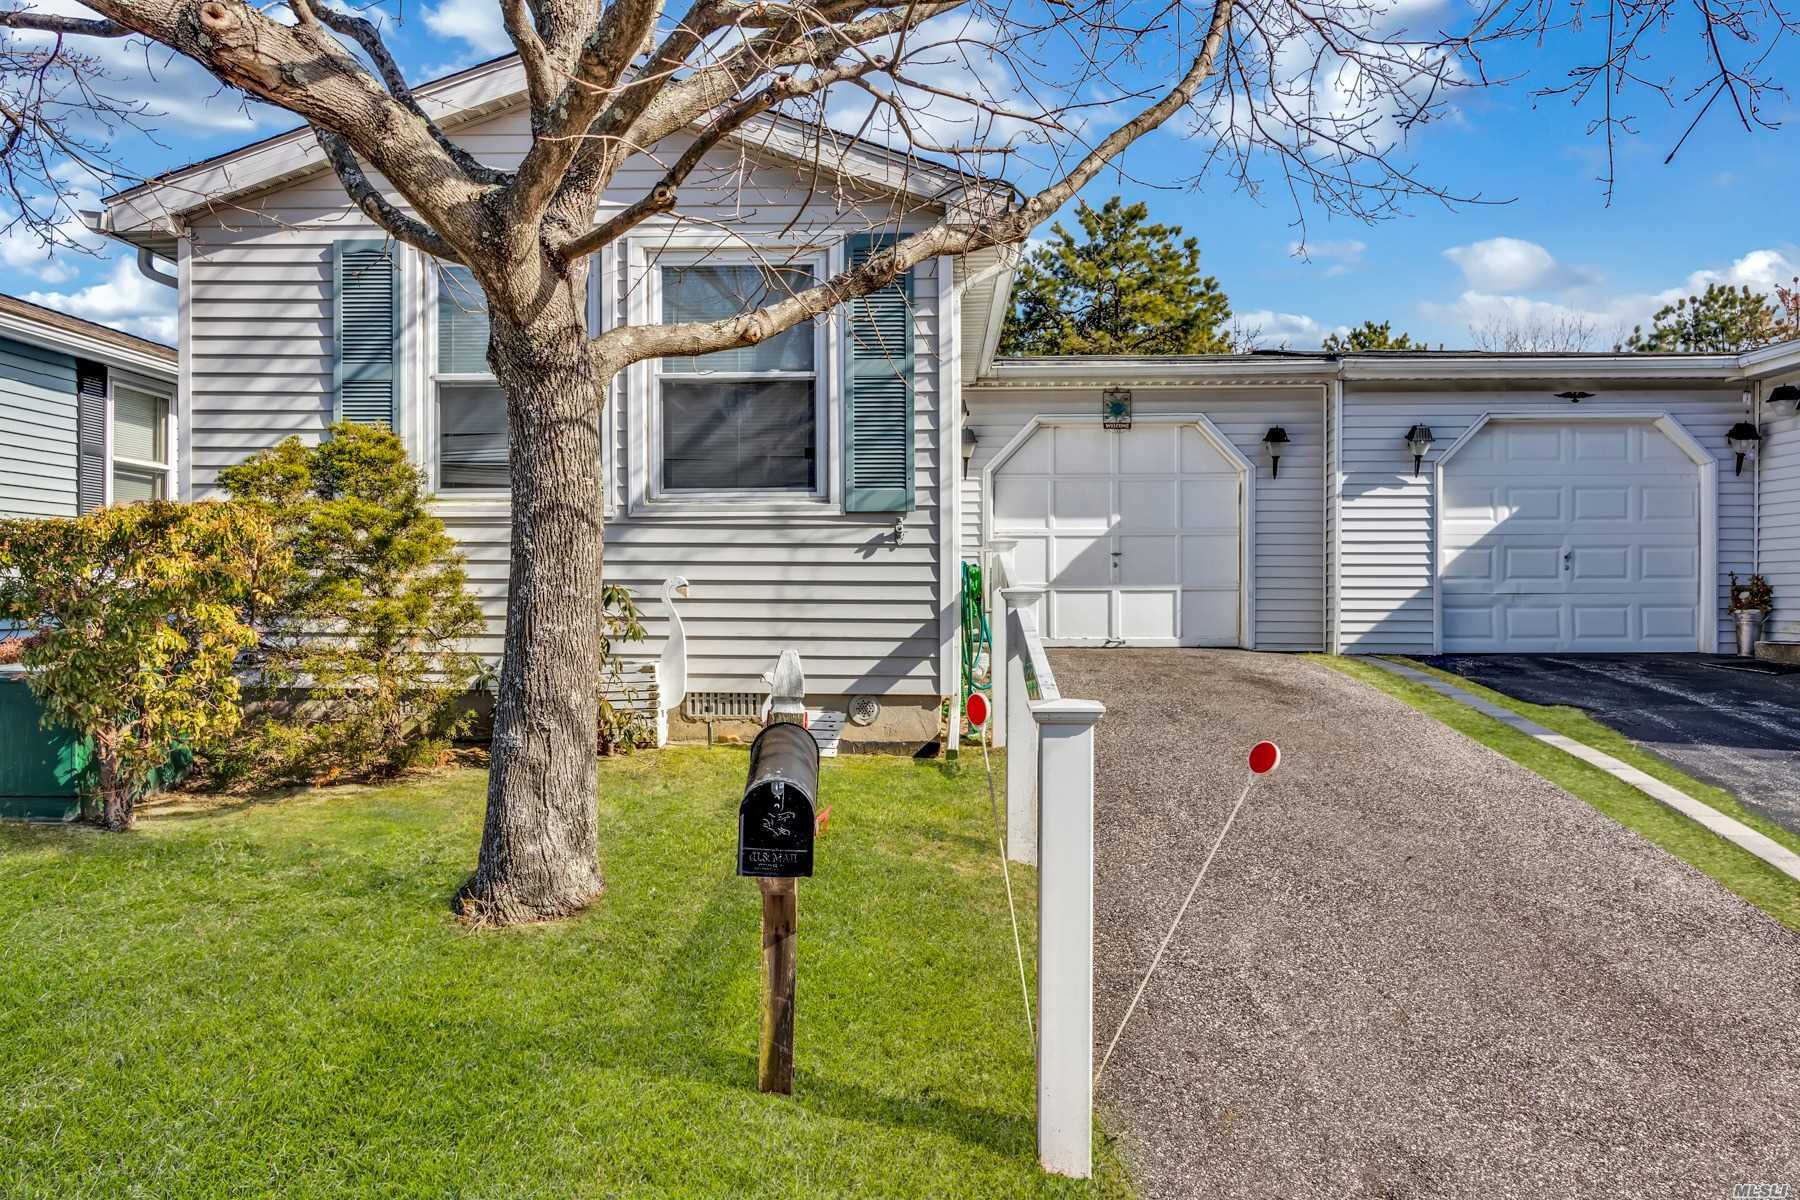 Property for sale at 86 W Village Circle, Manorville NY 11949, Manorville,  New York 11949